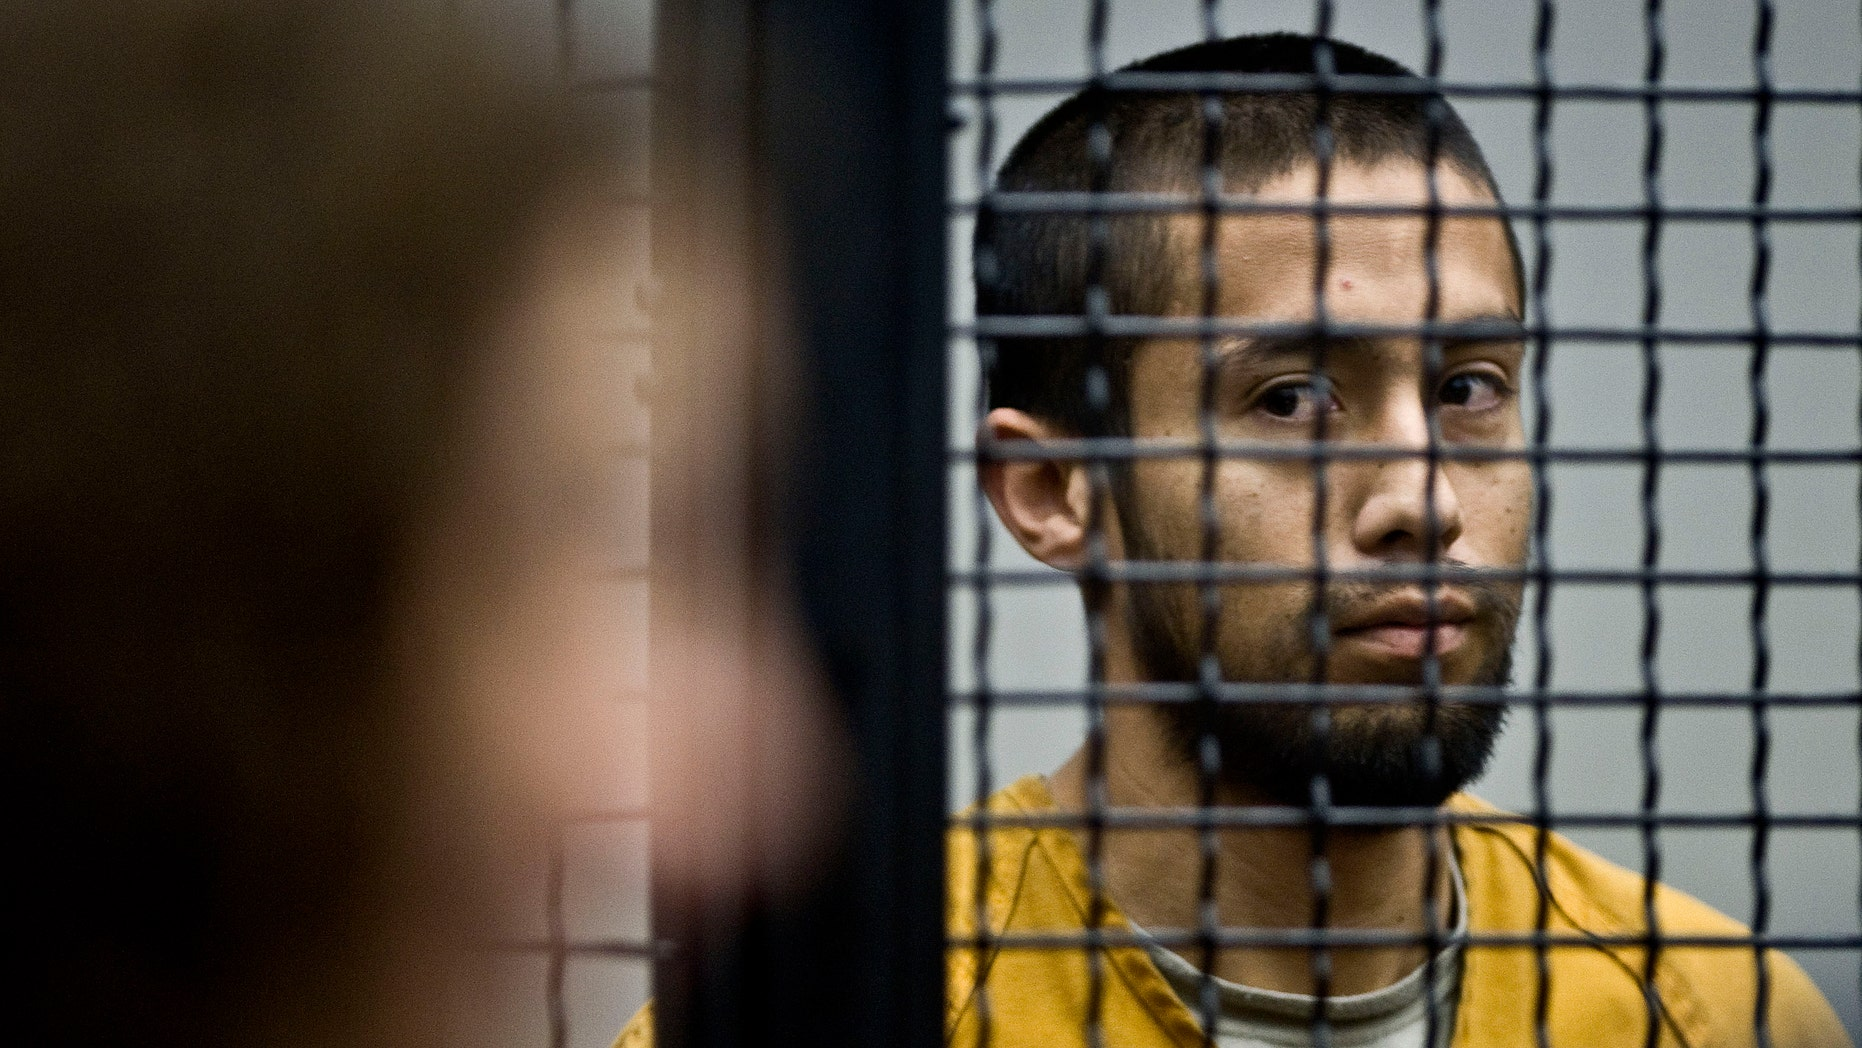 At the end of his arraignment hearing, Iztcoatl Ocampo, is seen in court, in Santa Ana, Calif., Monday, Feb. 6, 2012. (AP Photo/Orange County Register, Bruce Chambers, Pool)